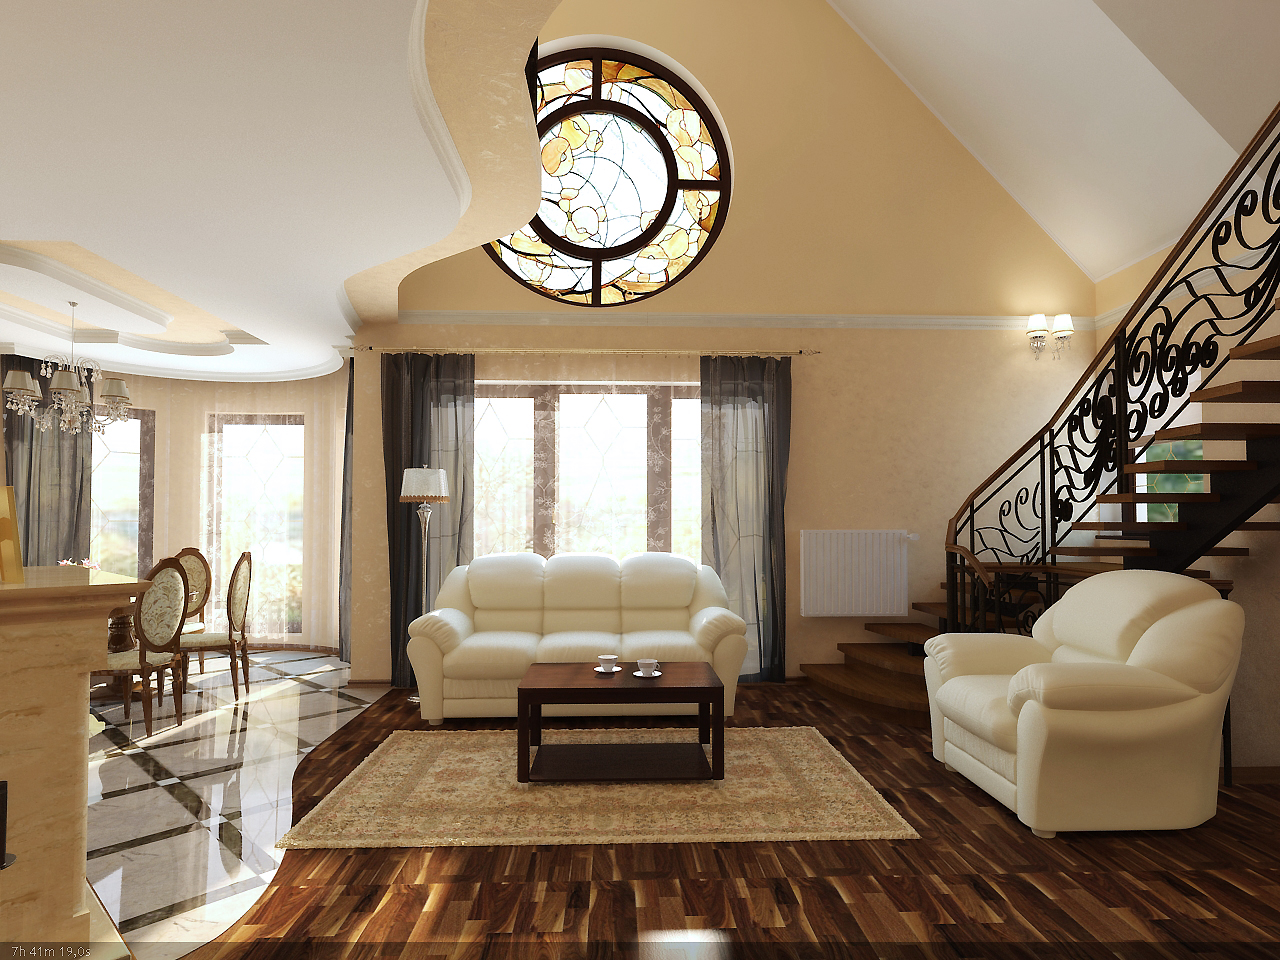 Classic Interior Design - Home decoration design pictures